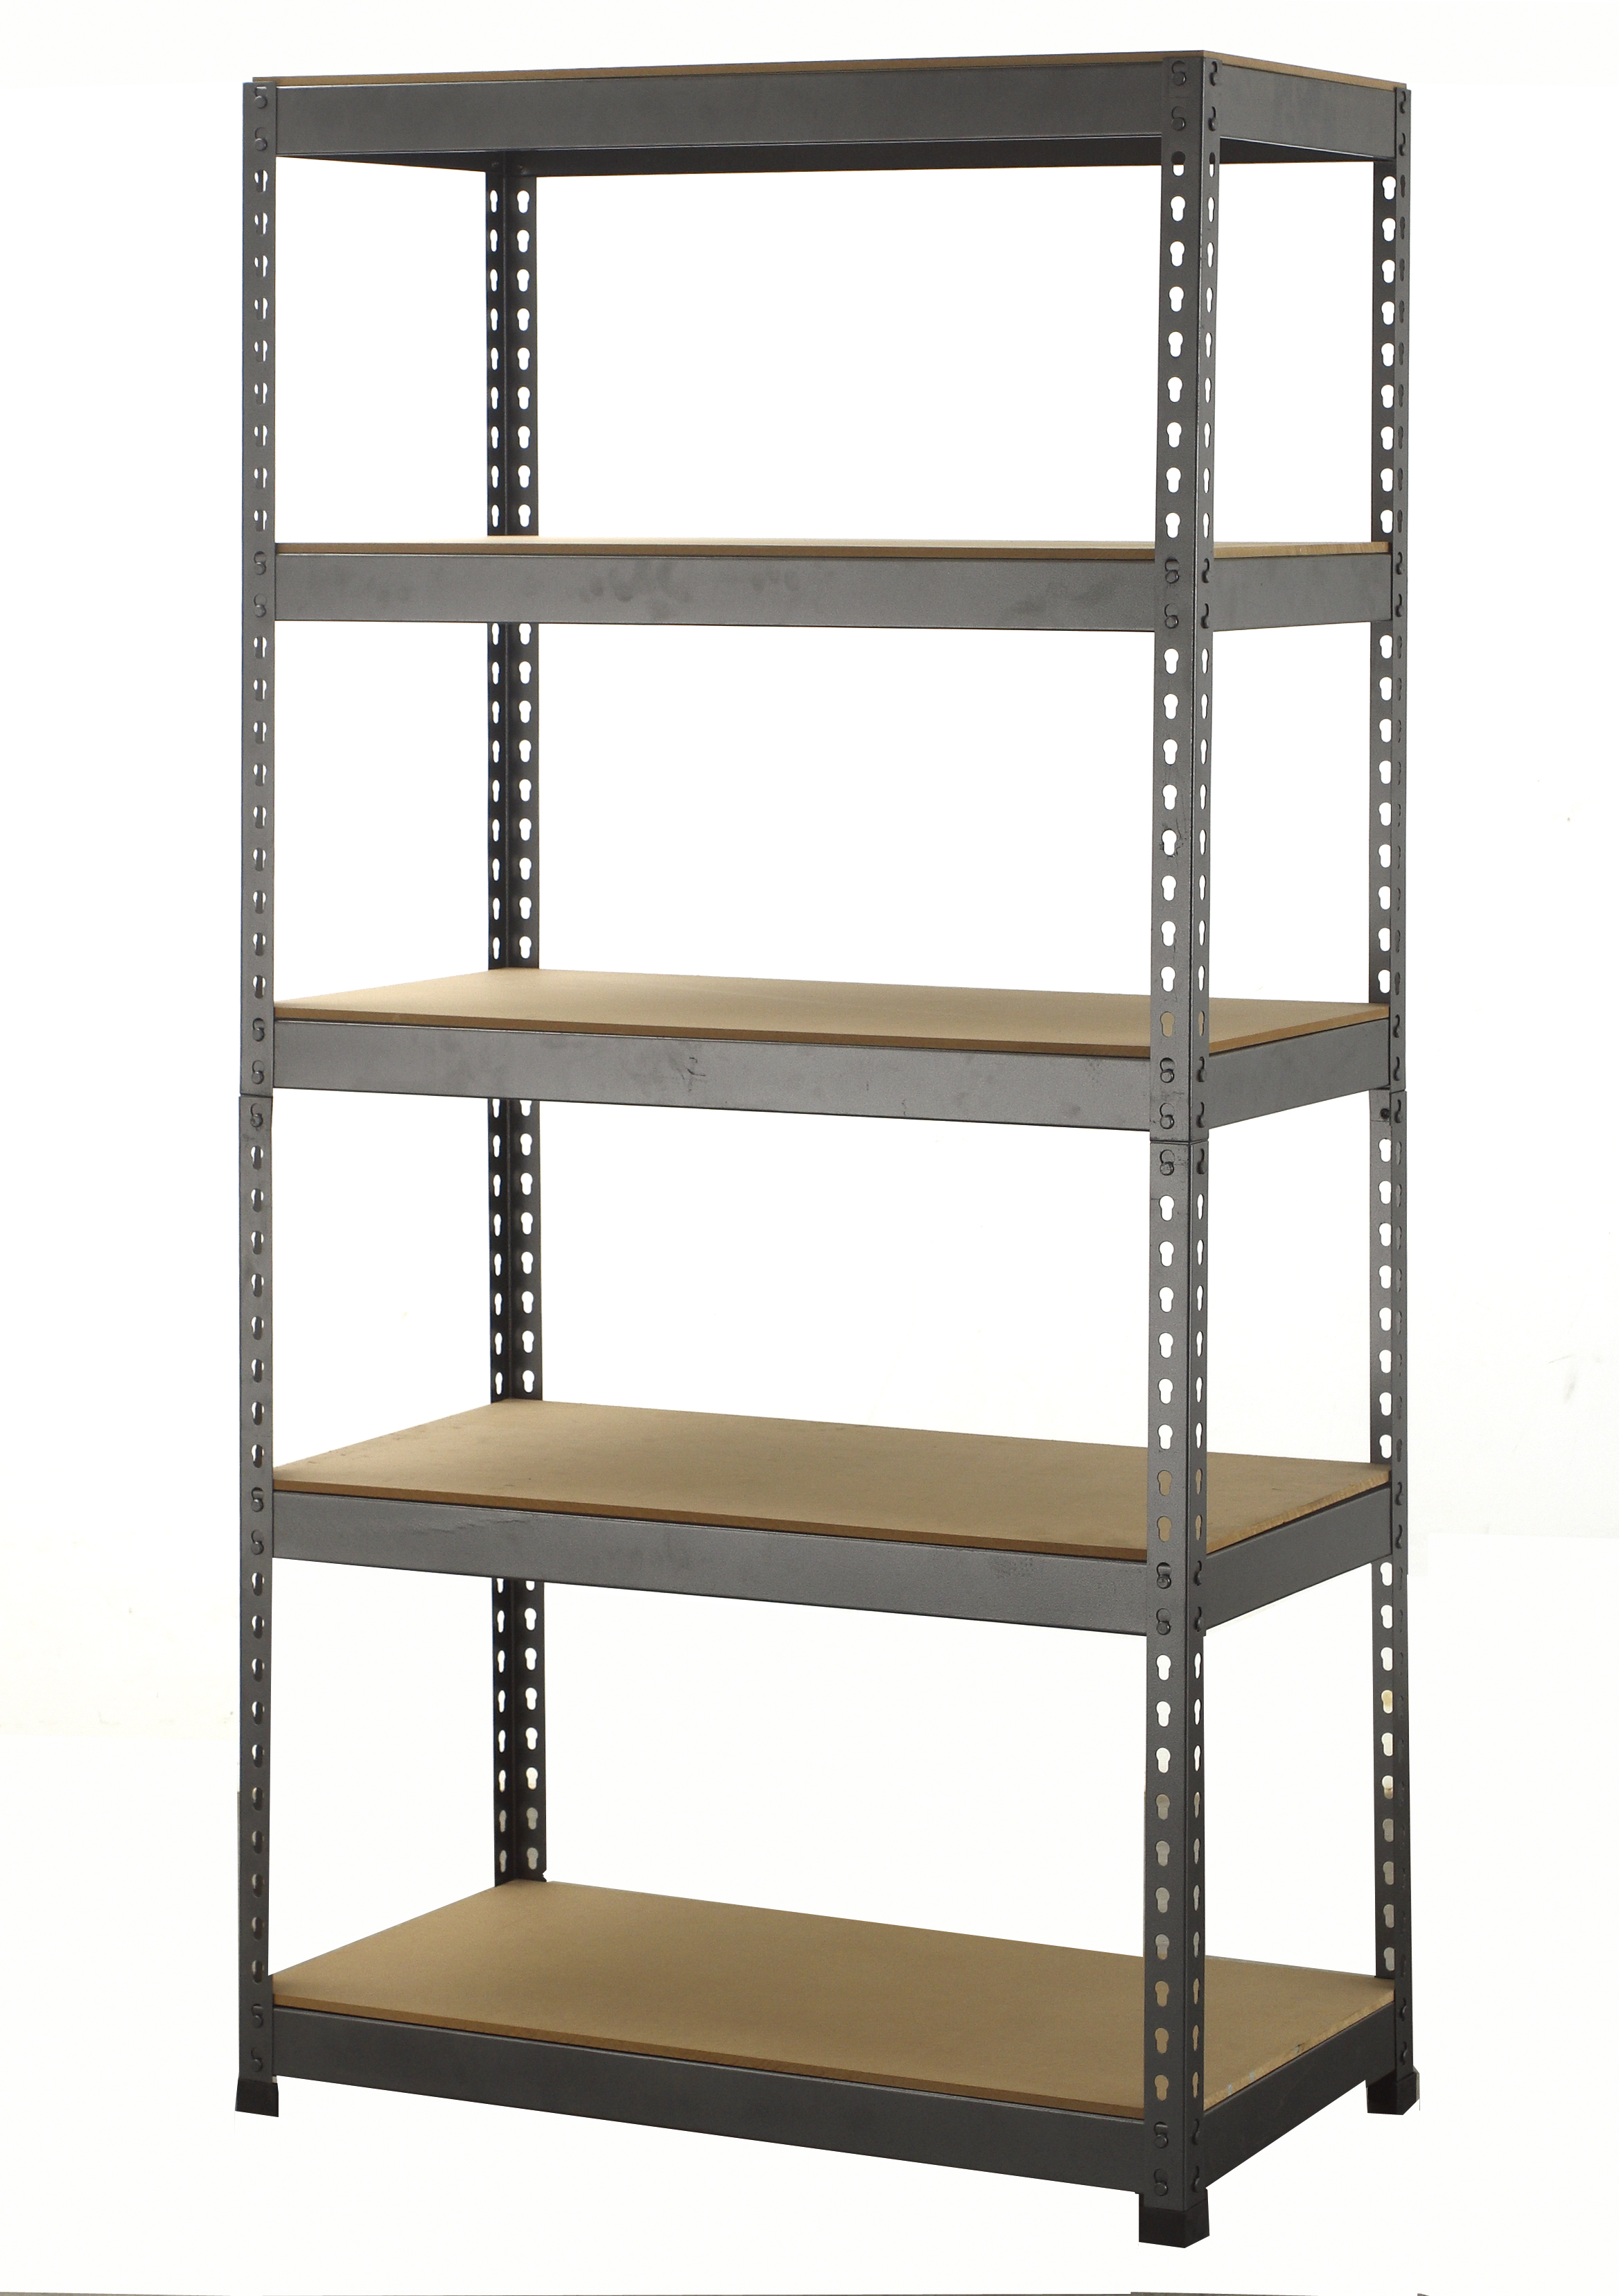 5 tier boltless industrial racking garage shelving storage. Black Bedroom Furniture Sets. Home Design Ideas